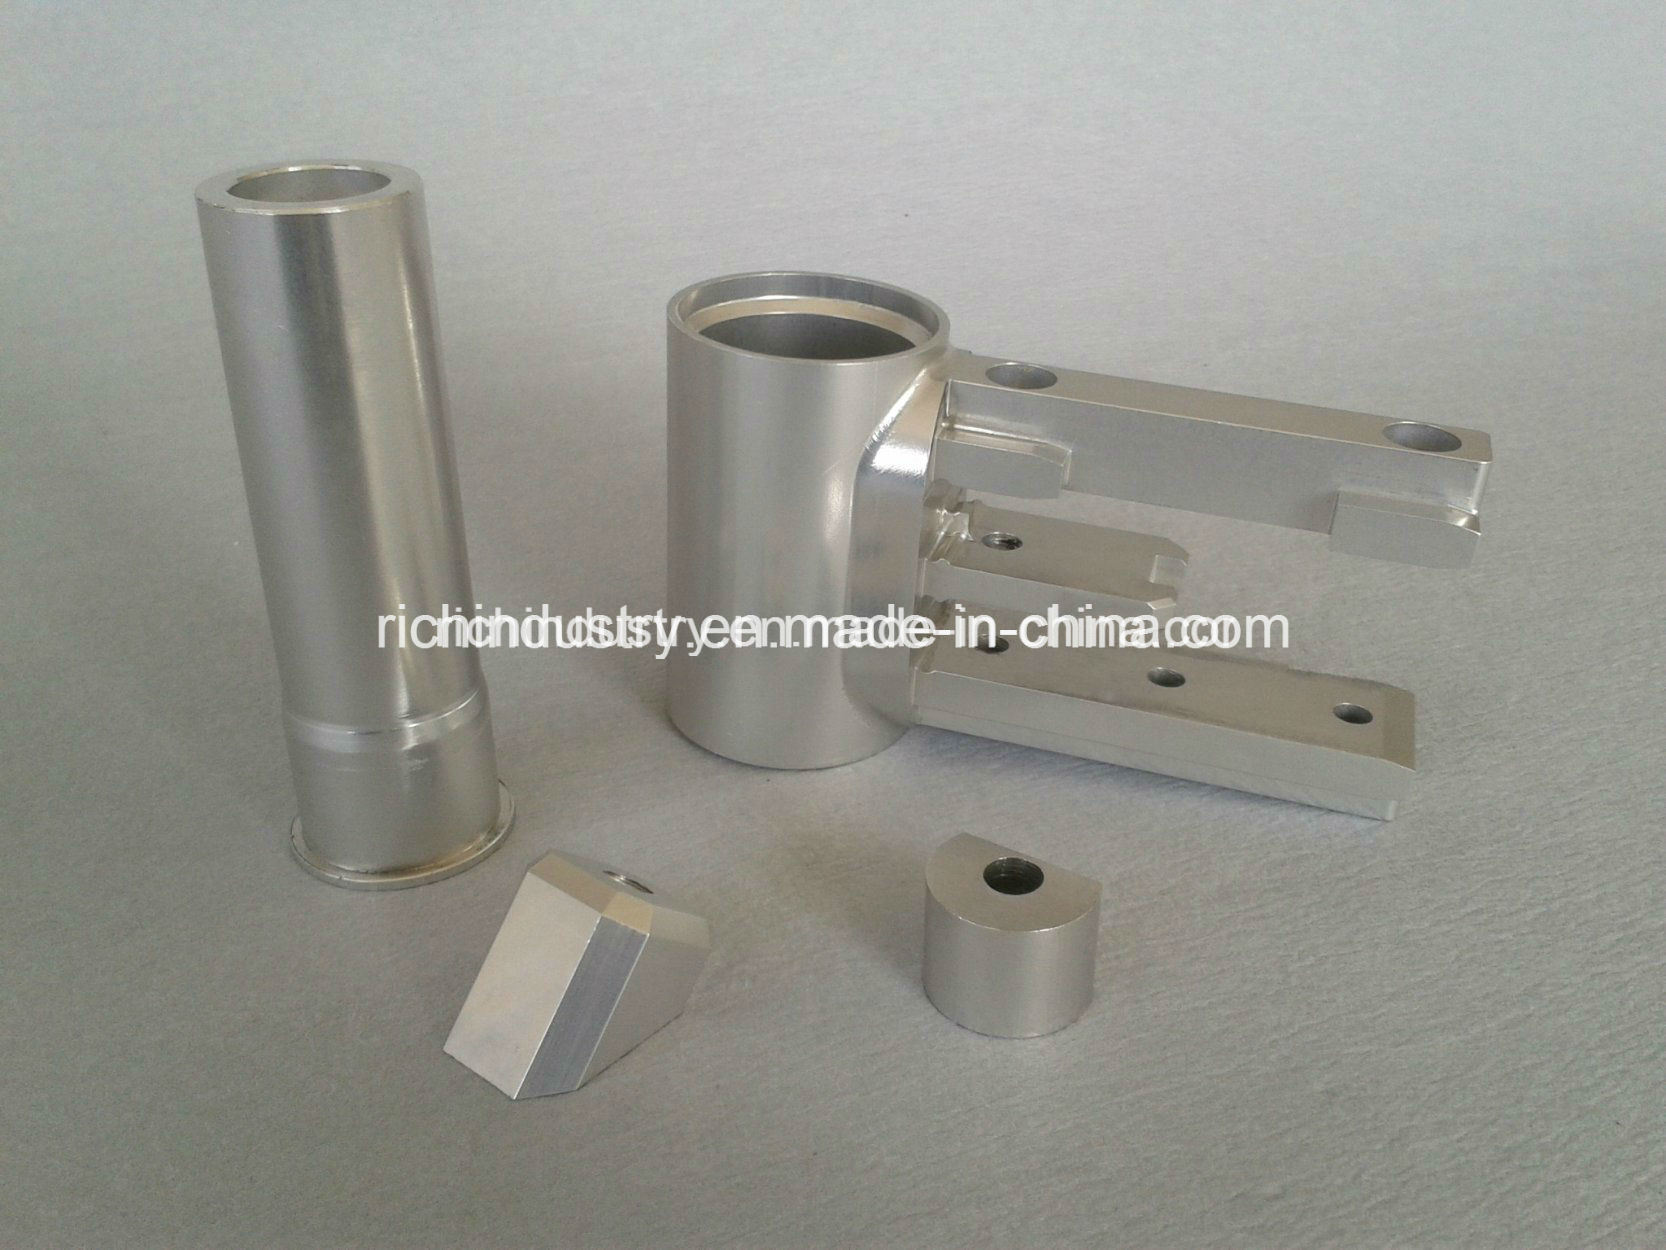 CNC Machining Part/Brass CNC Machining Part/Machinery Part/Metal Forging Parts/Auto Parts/Steel Forging Part/Aluminium Forging/Automobile Part/Bicycle Parts